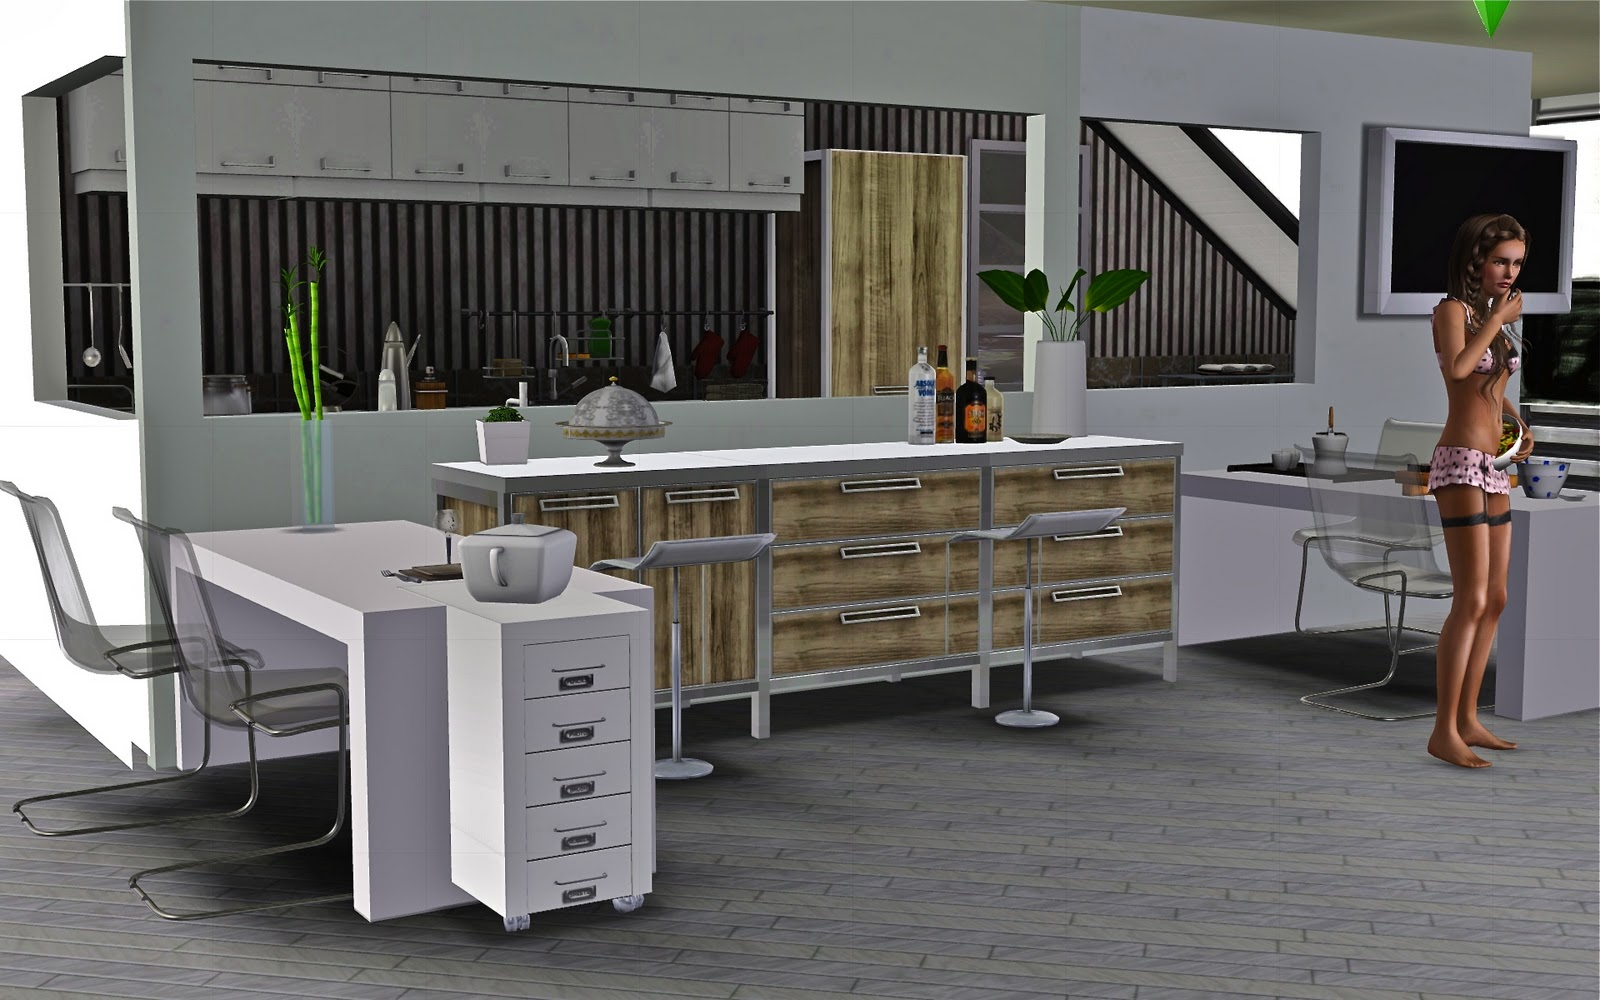 Le blog de guijobo ambiance cuisine moderne for Ambiance cuisine